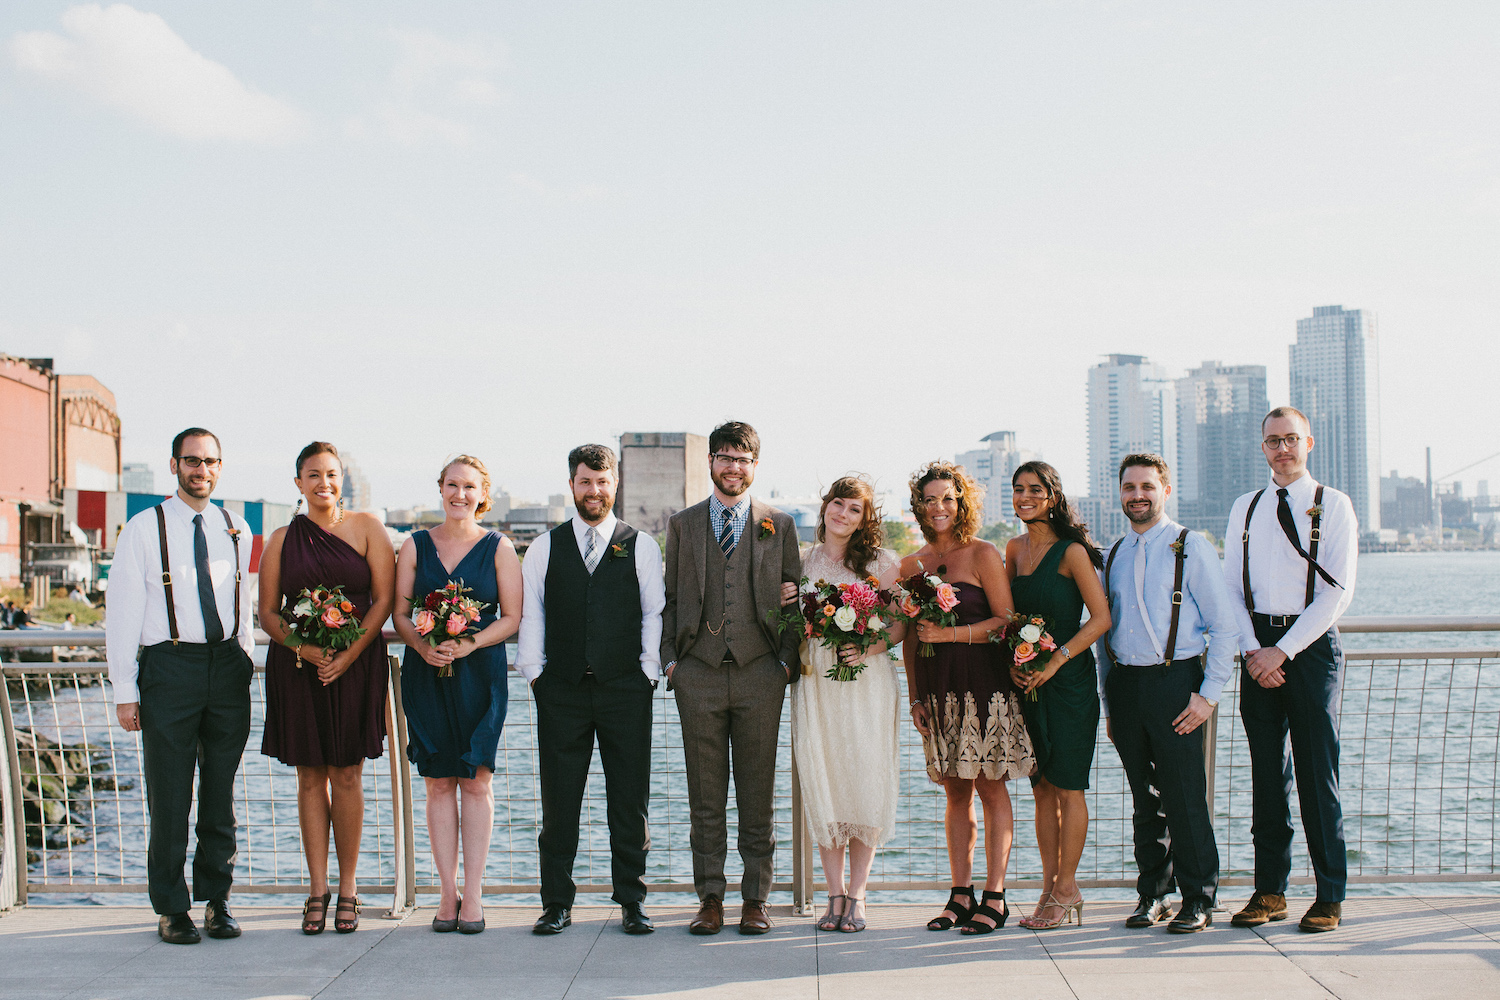 Full Aperture Floral & Corey Torpie Photography  - Brooklyn Wedding - 46.jpeg